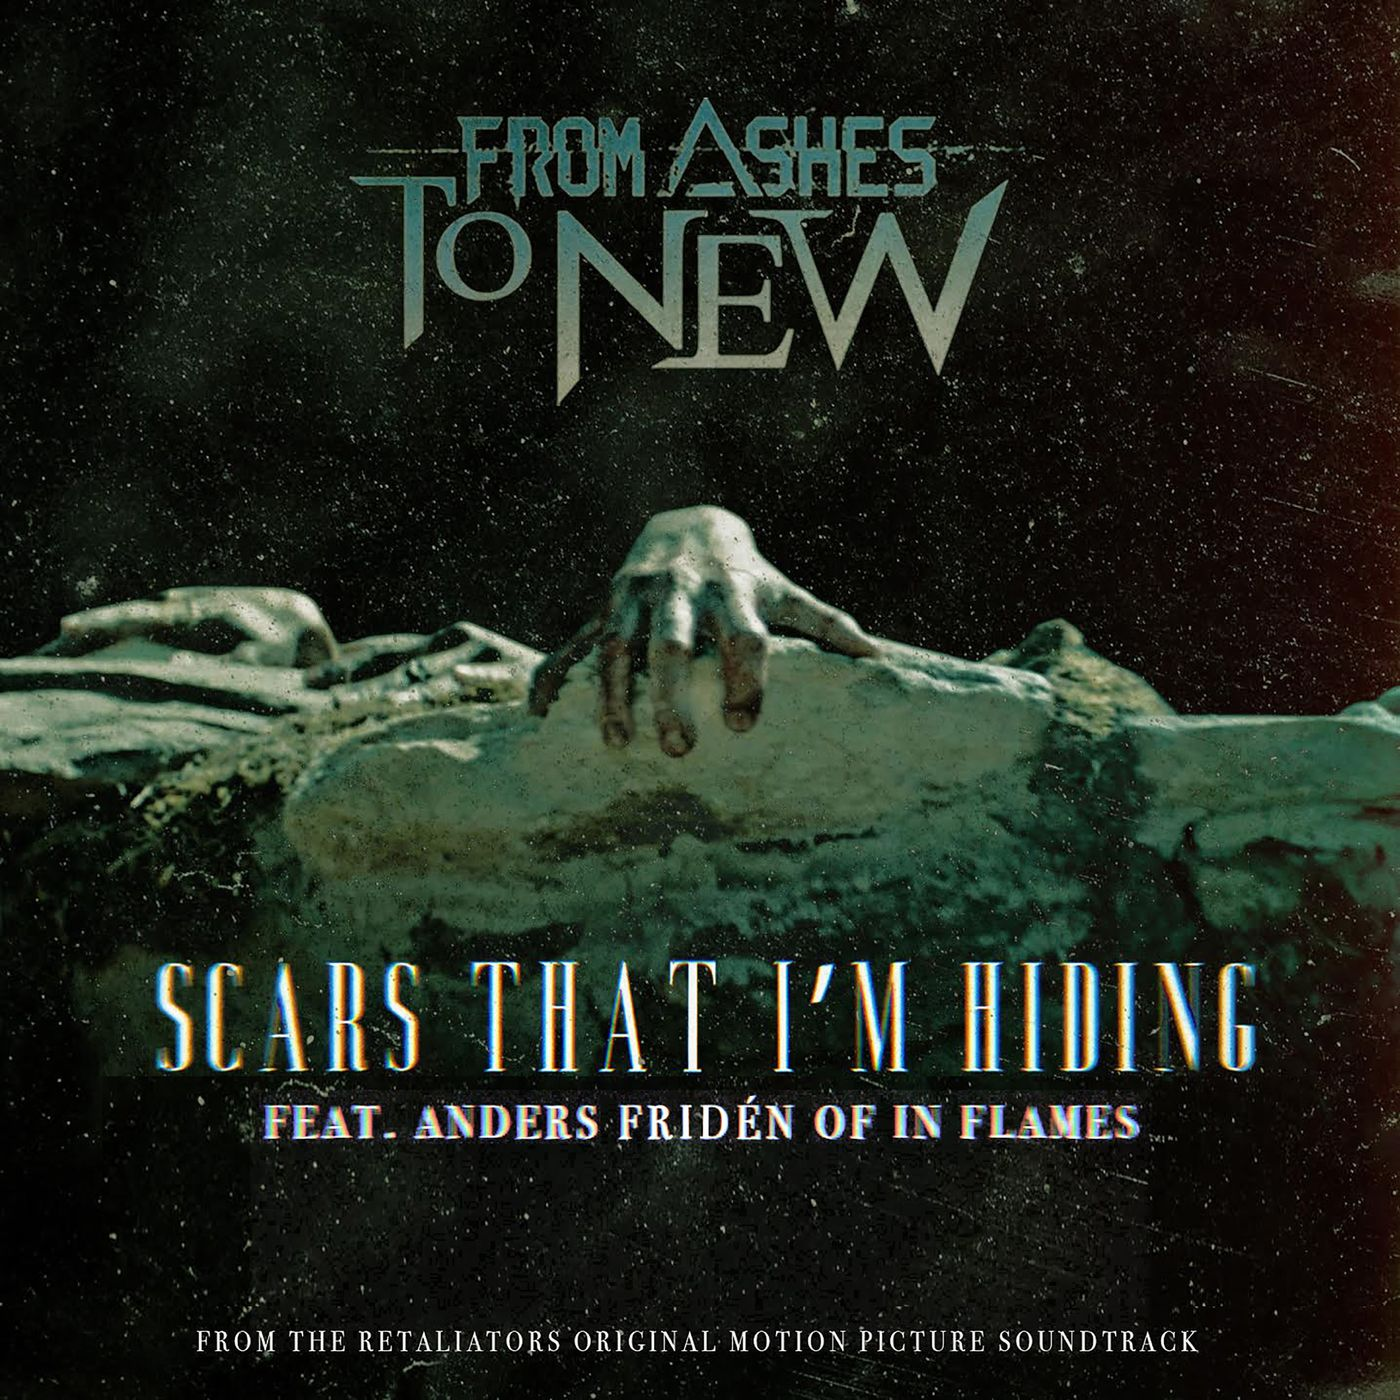 From Ashes To New - Scars That I'm Hiding [single] (2020)